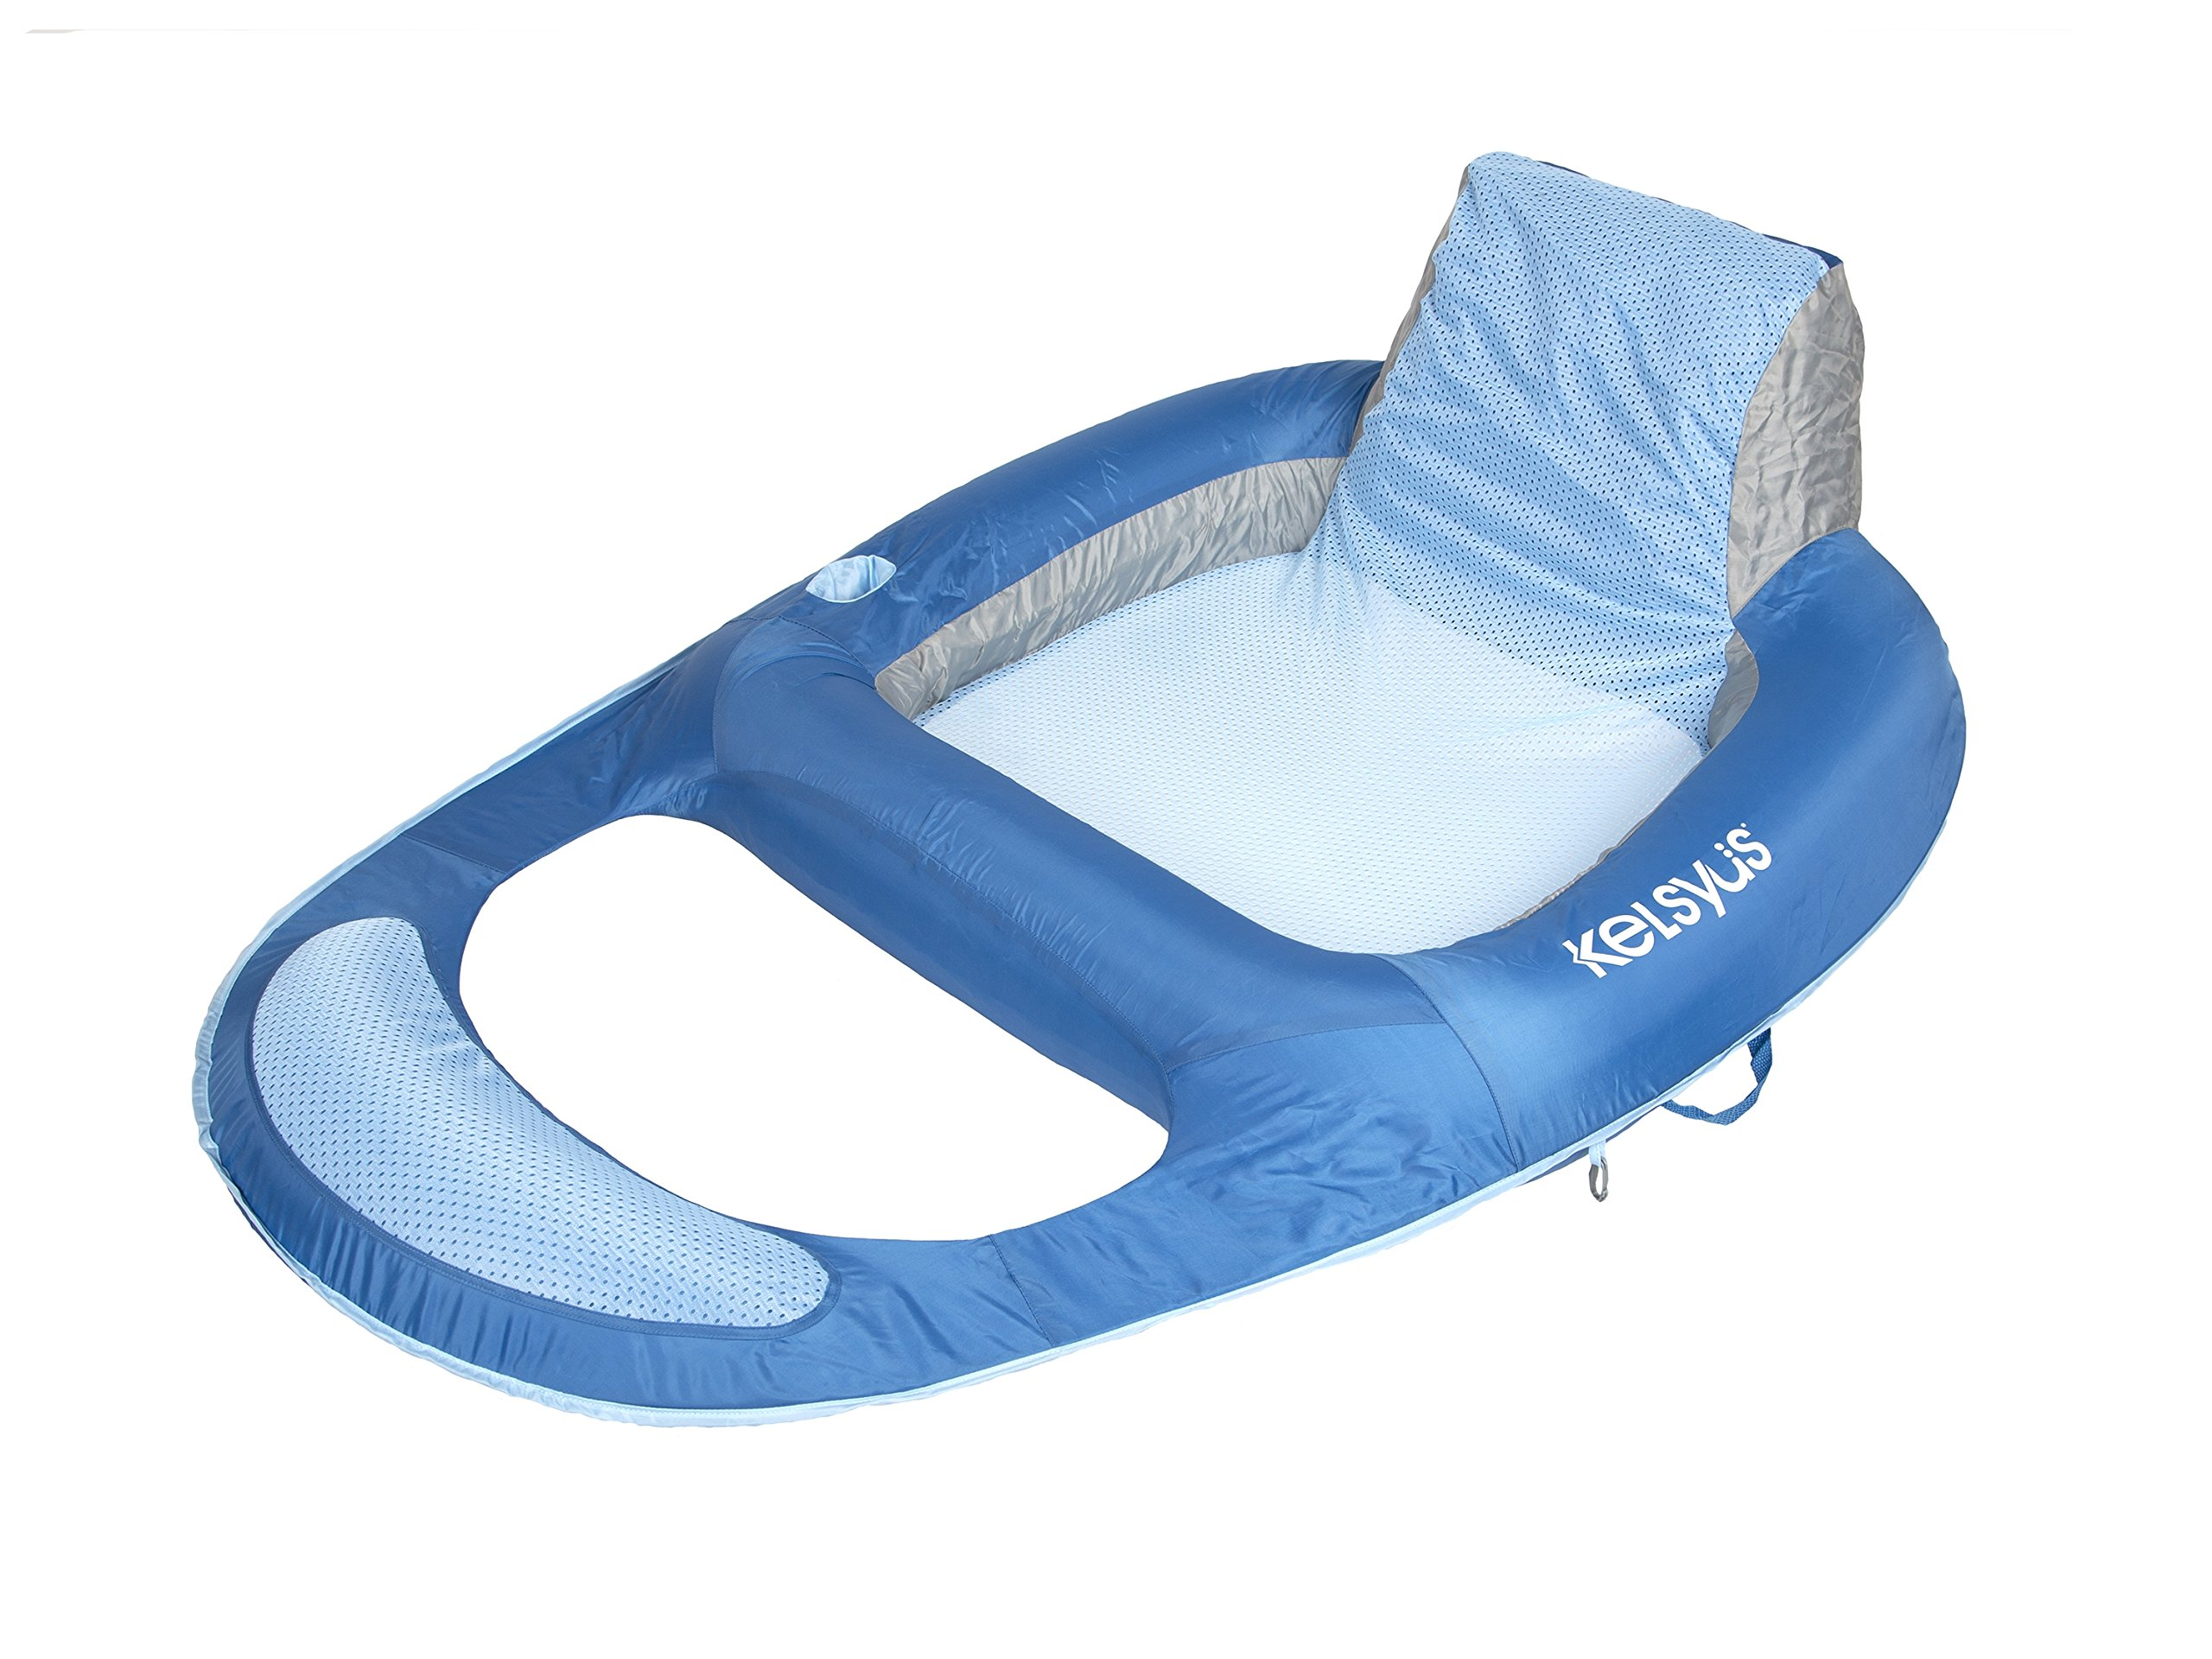 Kelsyus SwimWays 80014 Floating Lounger by Kelsyus